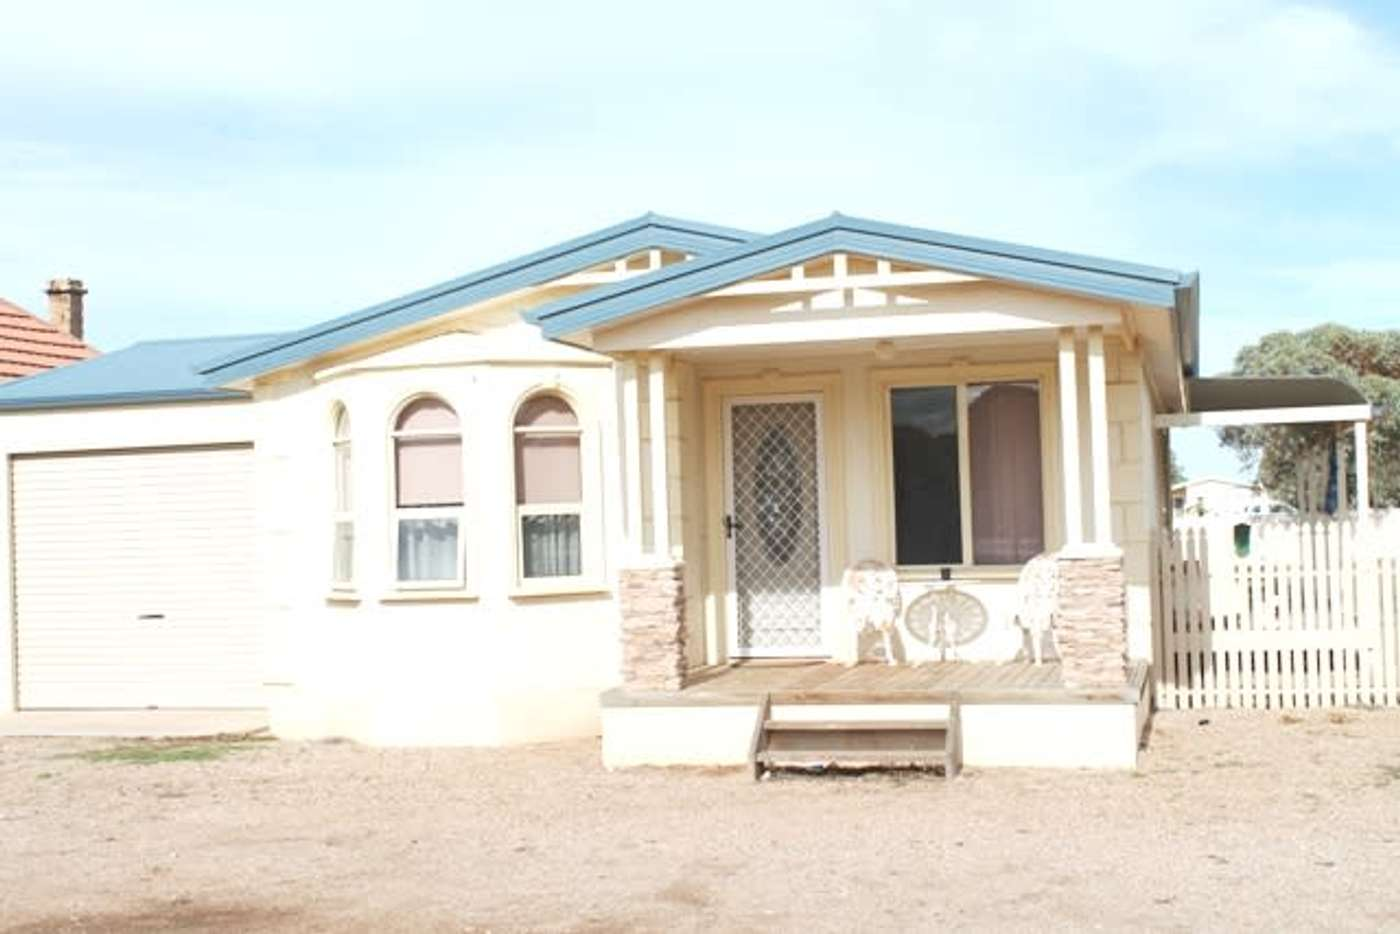 Main view of Homely house listing, 31 Lincoln Hwy, Cowell SA 5602